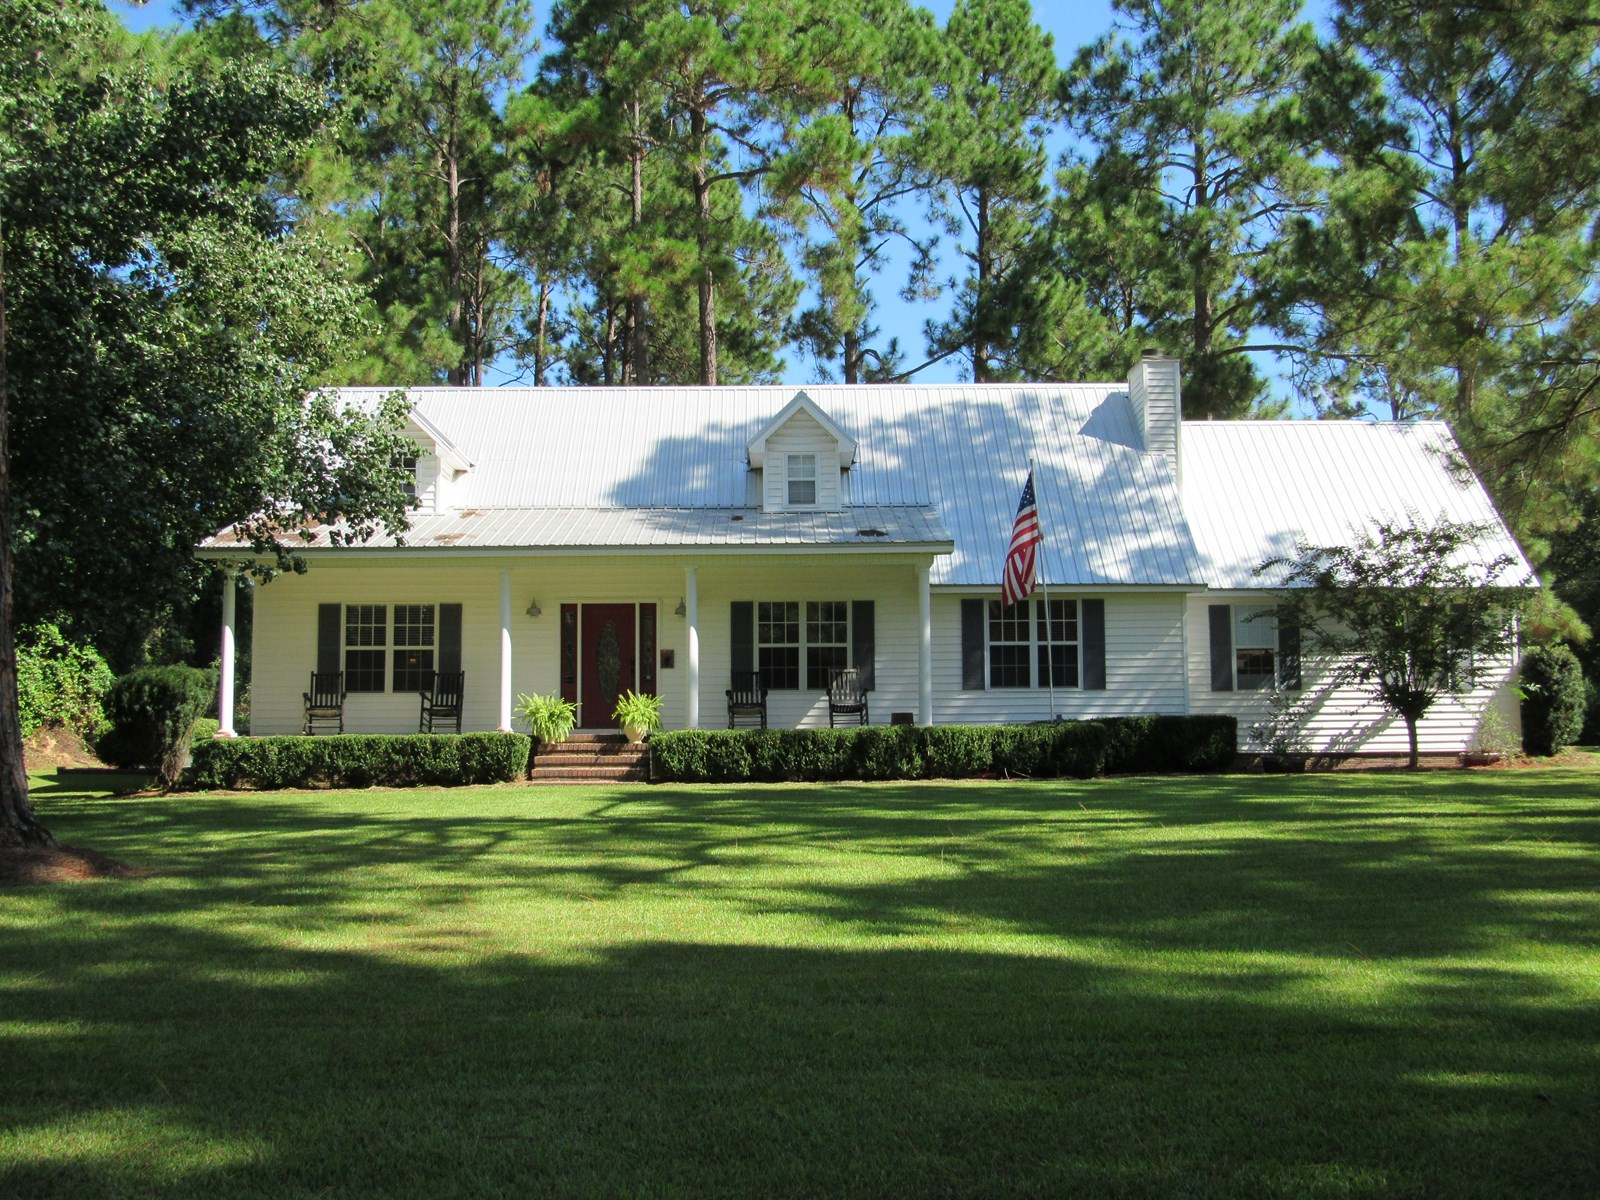 Charming Country Home in Great Neighborhood.